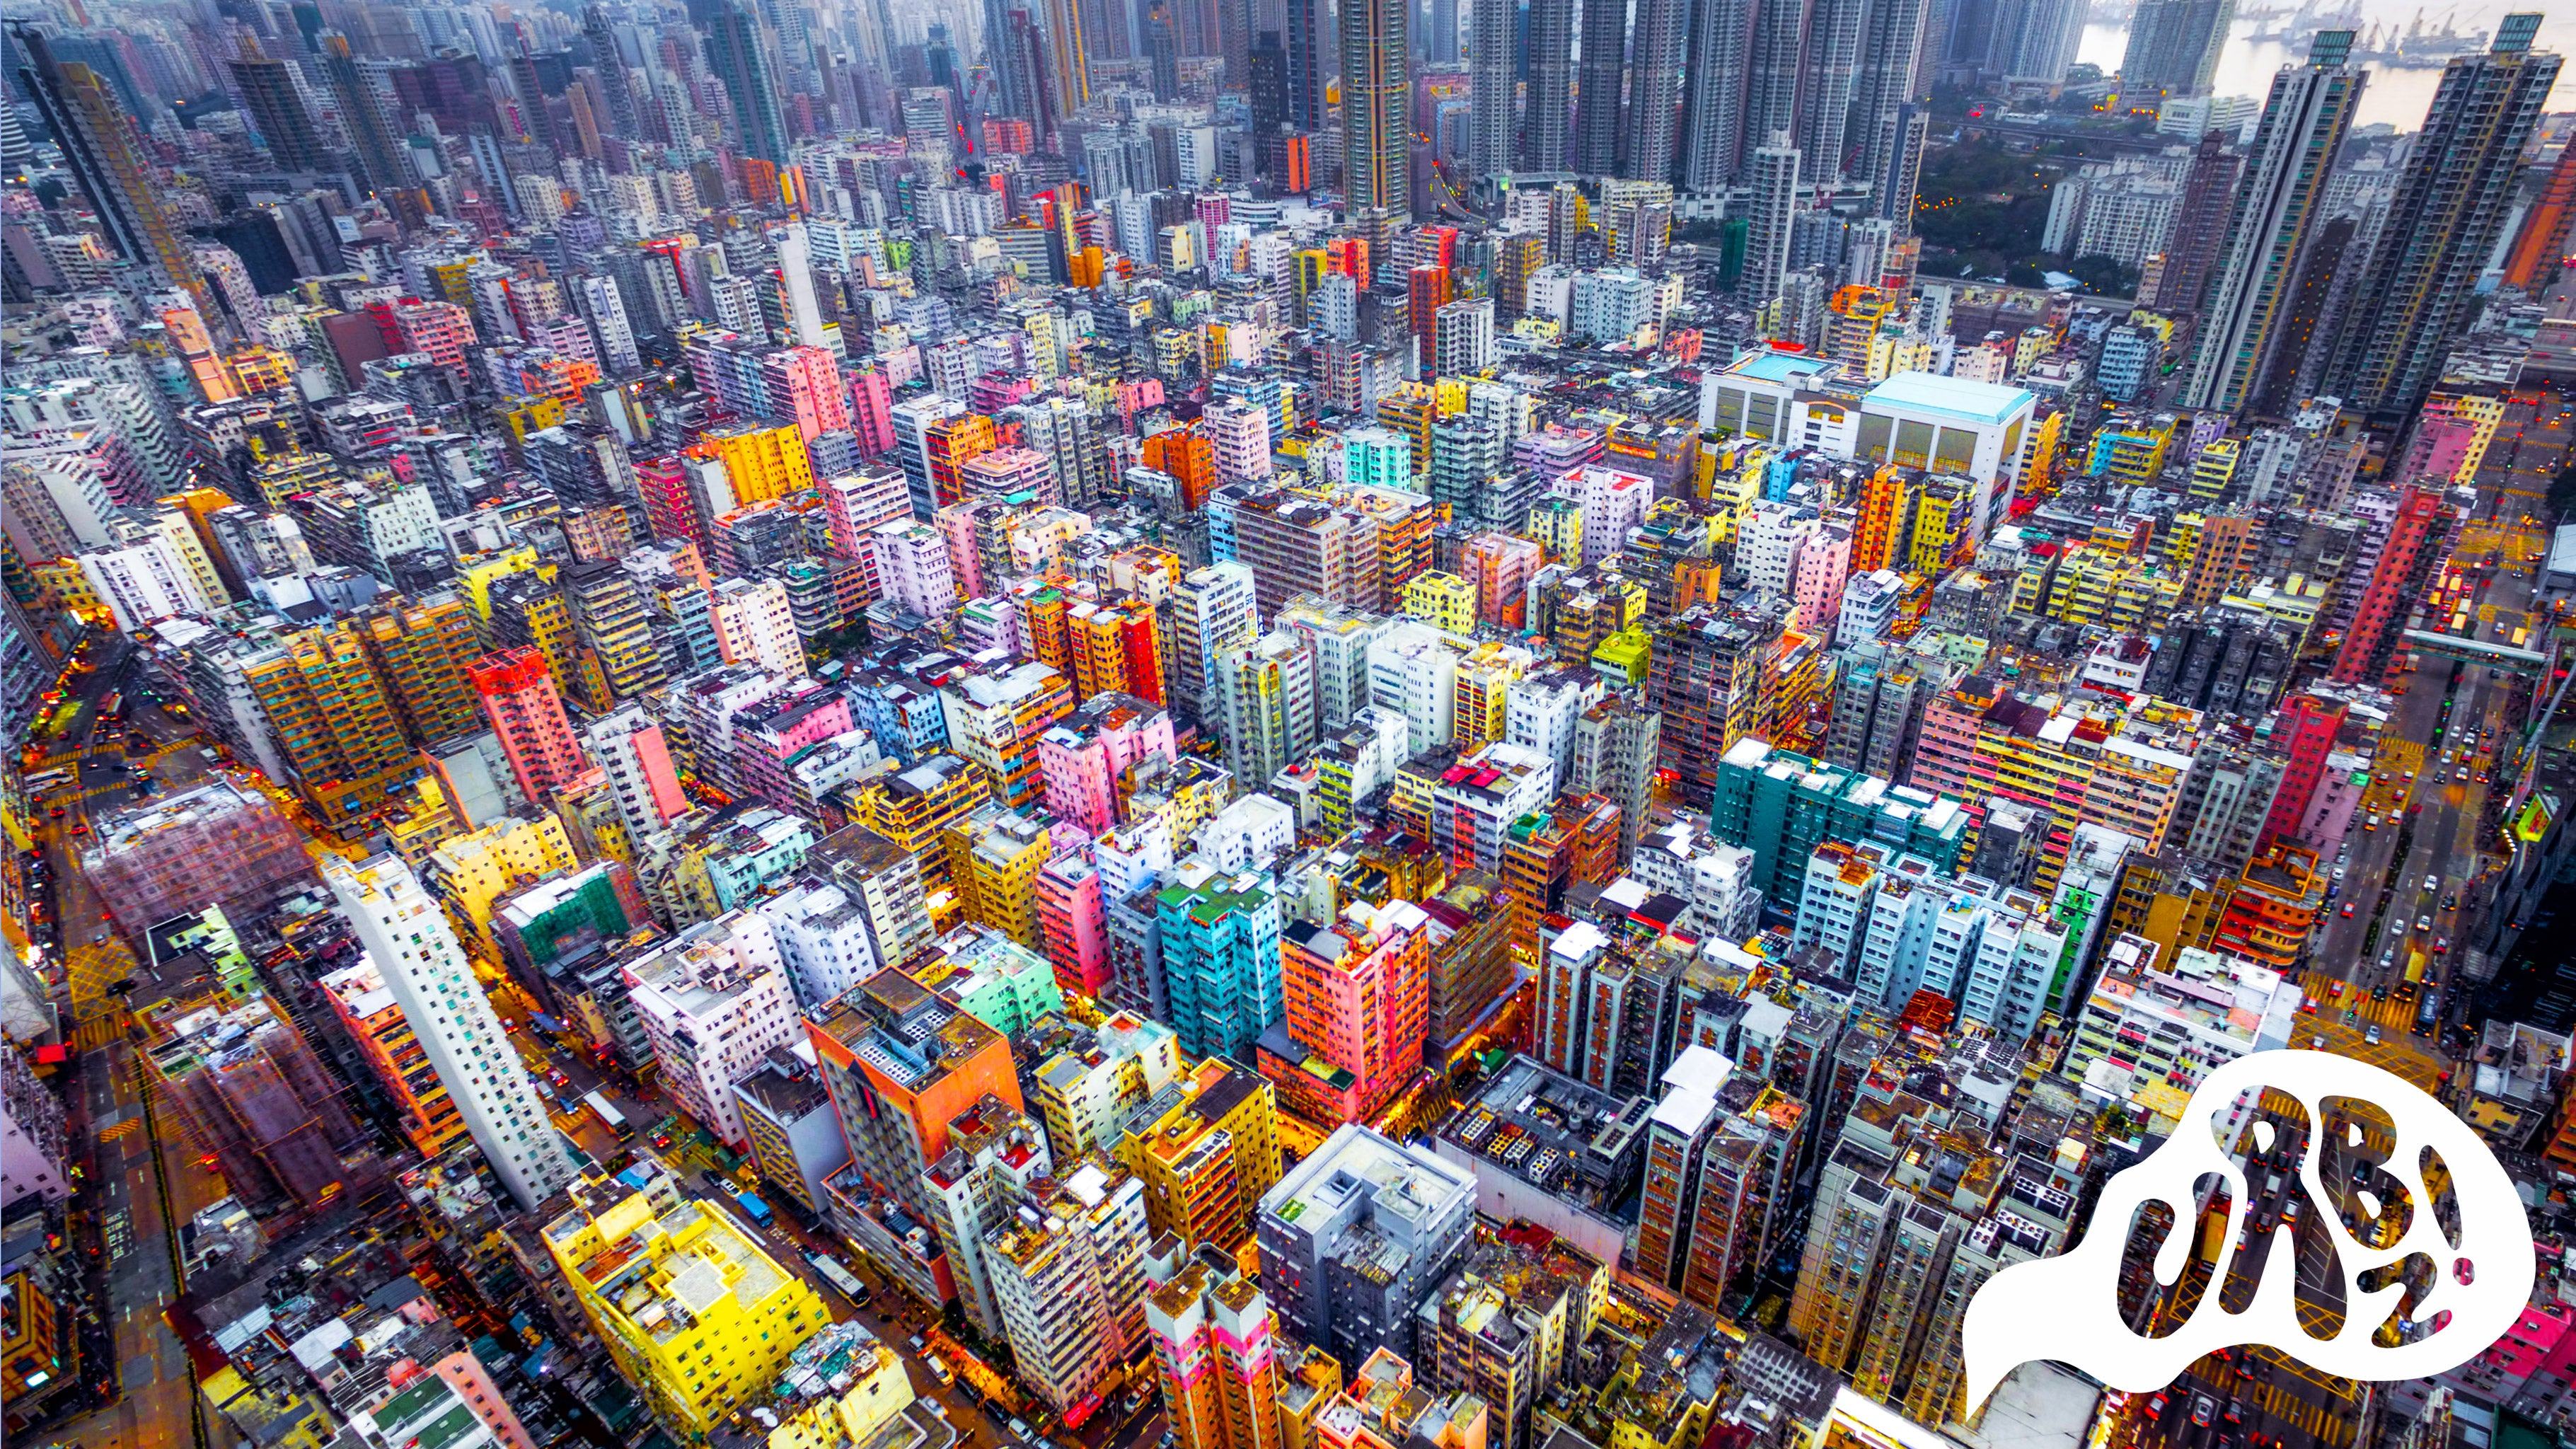 Urbz Hong Kong drone photo by Andy Yeung